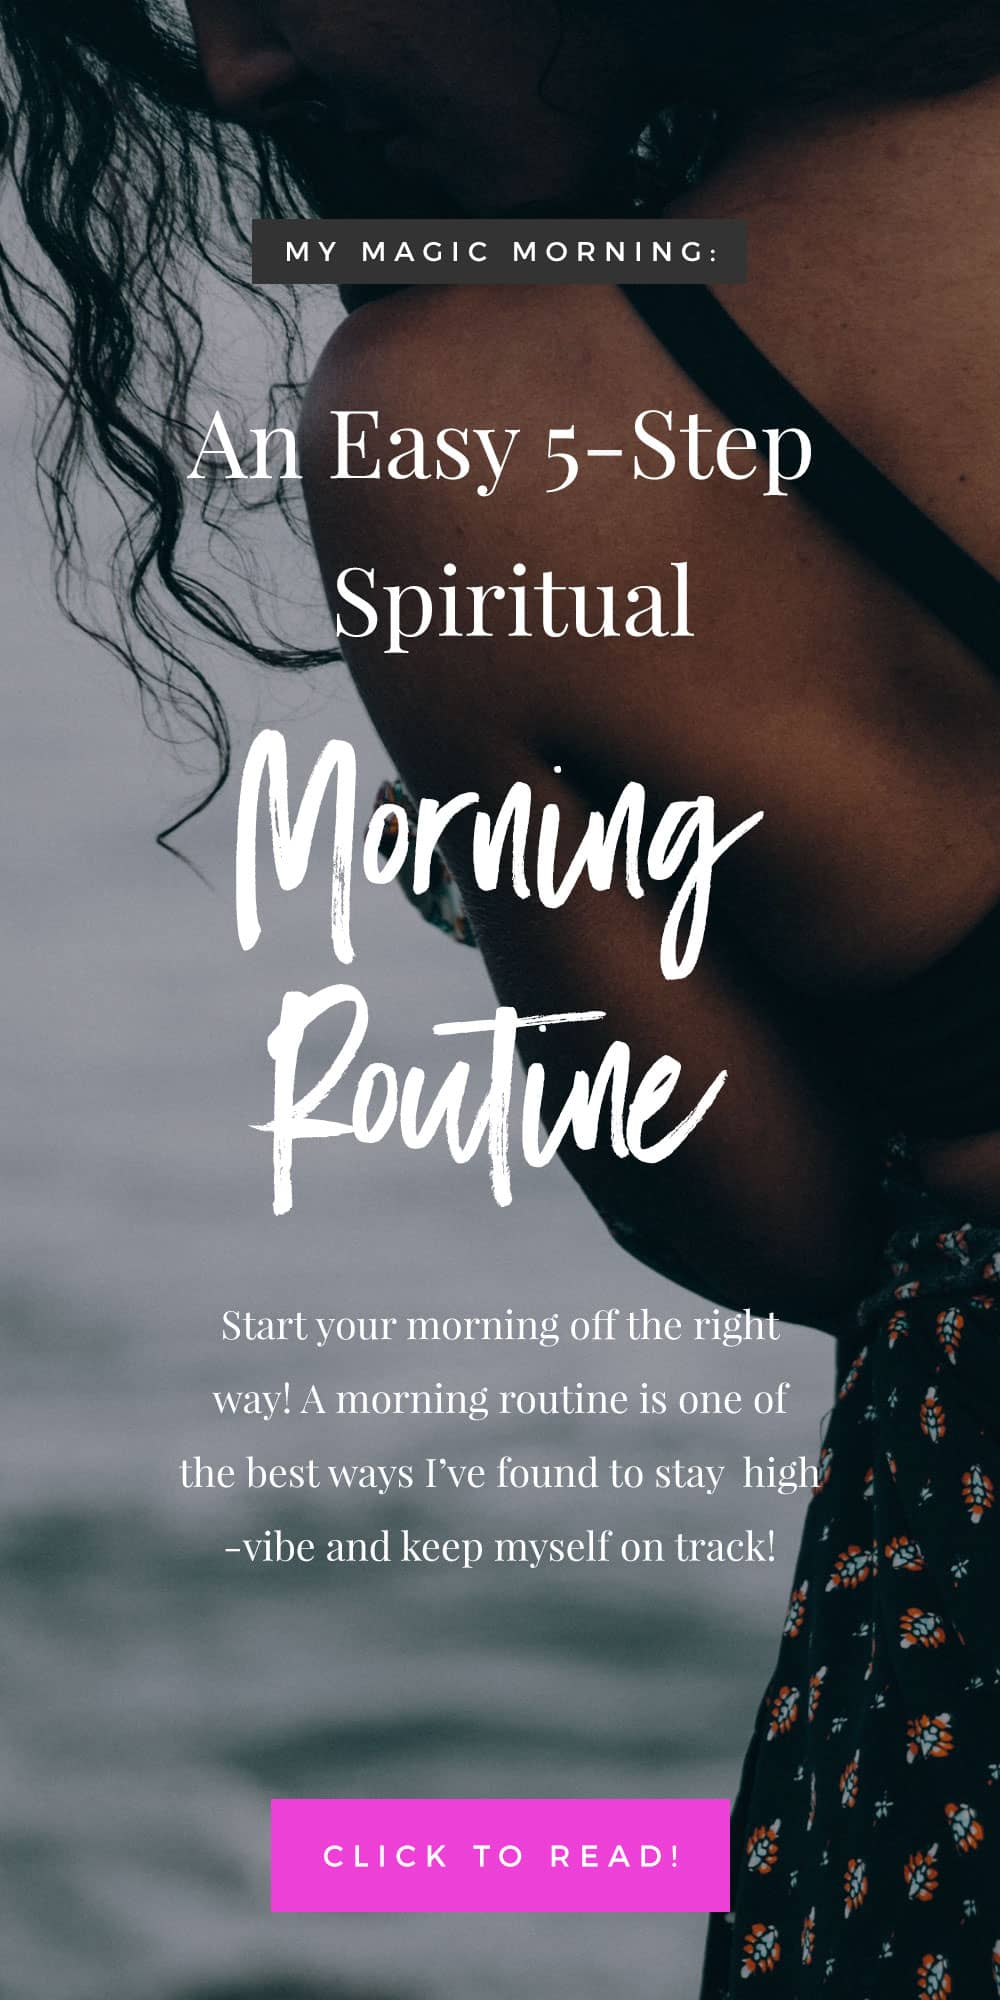 My Magic Morning: An Easy 5-Step Spiritual Morning Routine